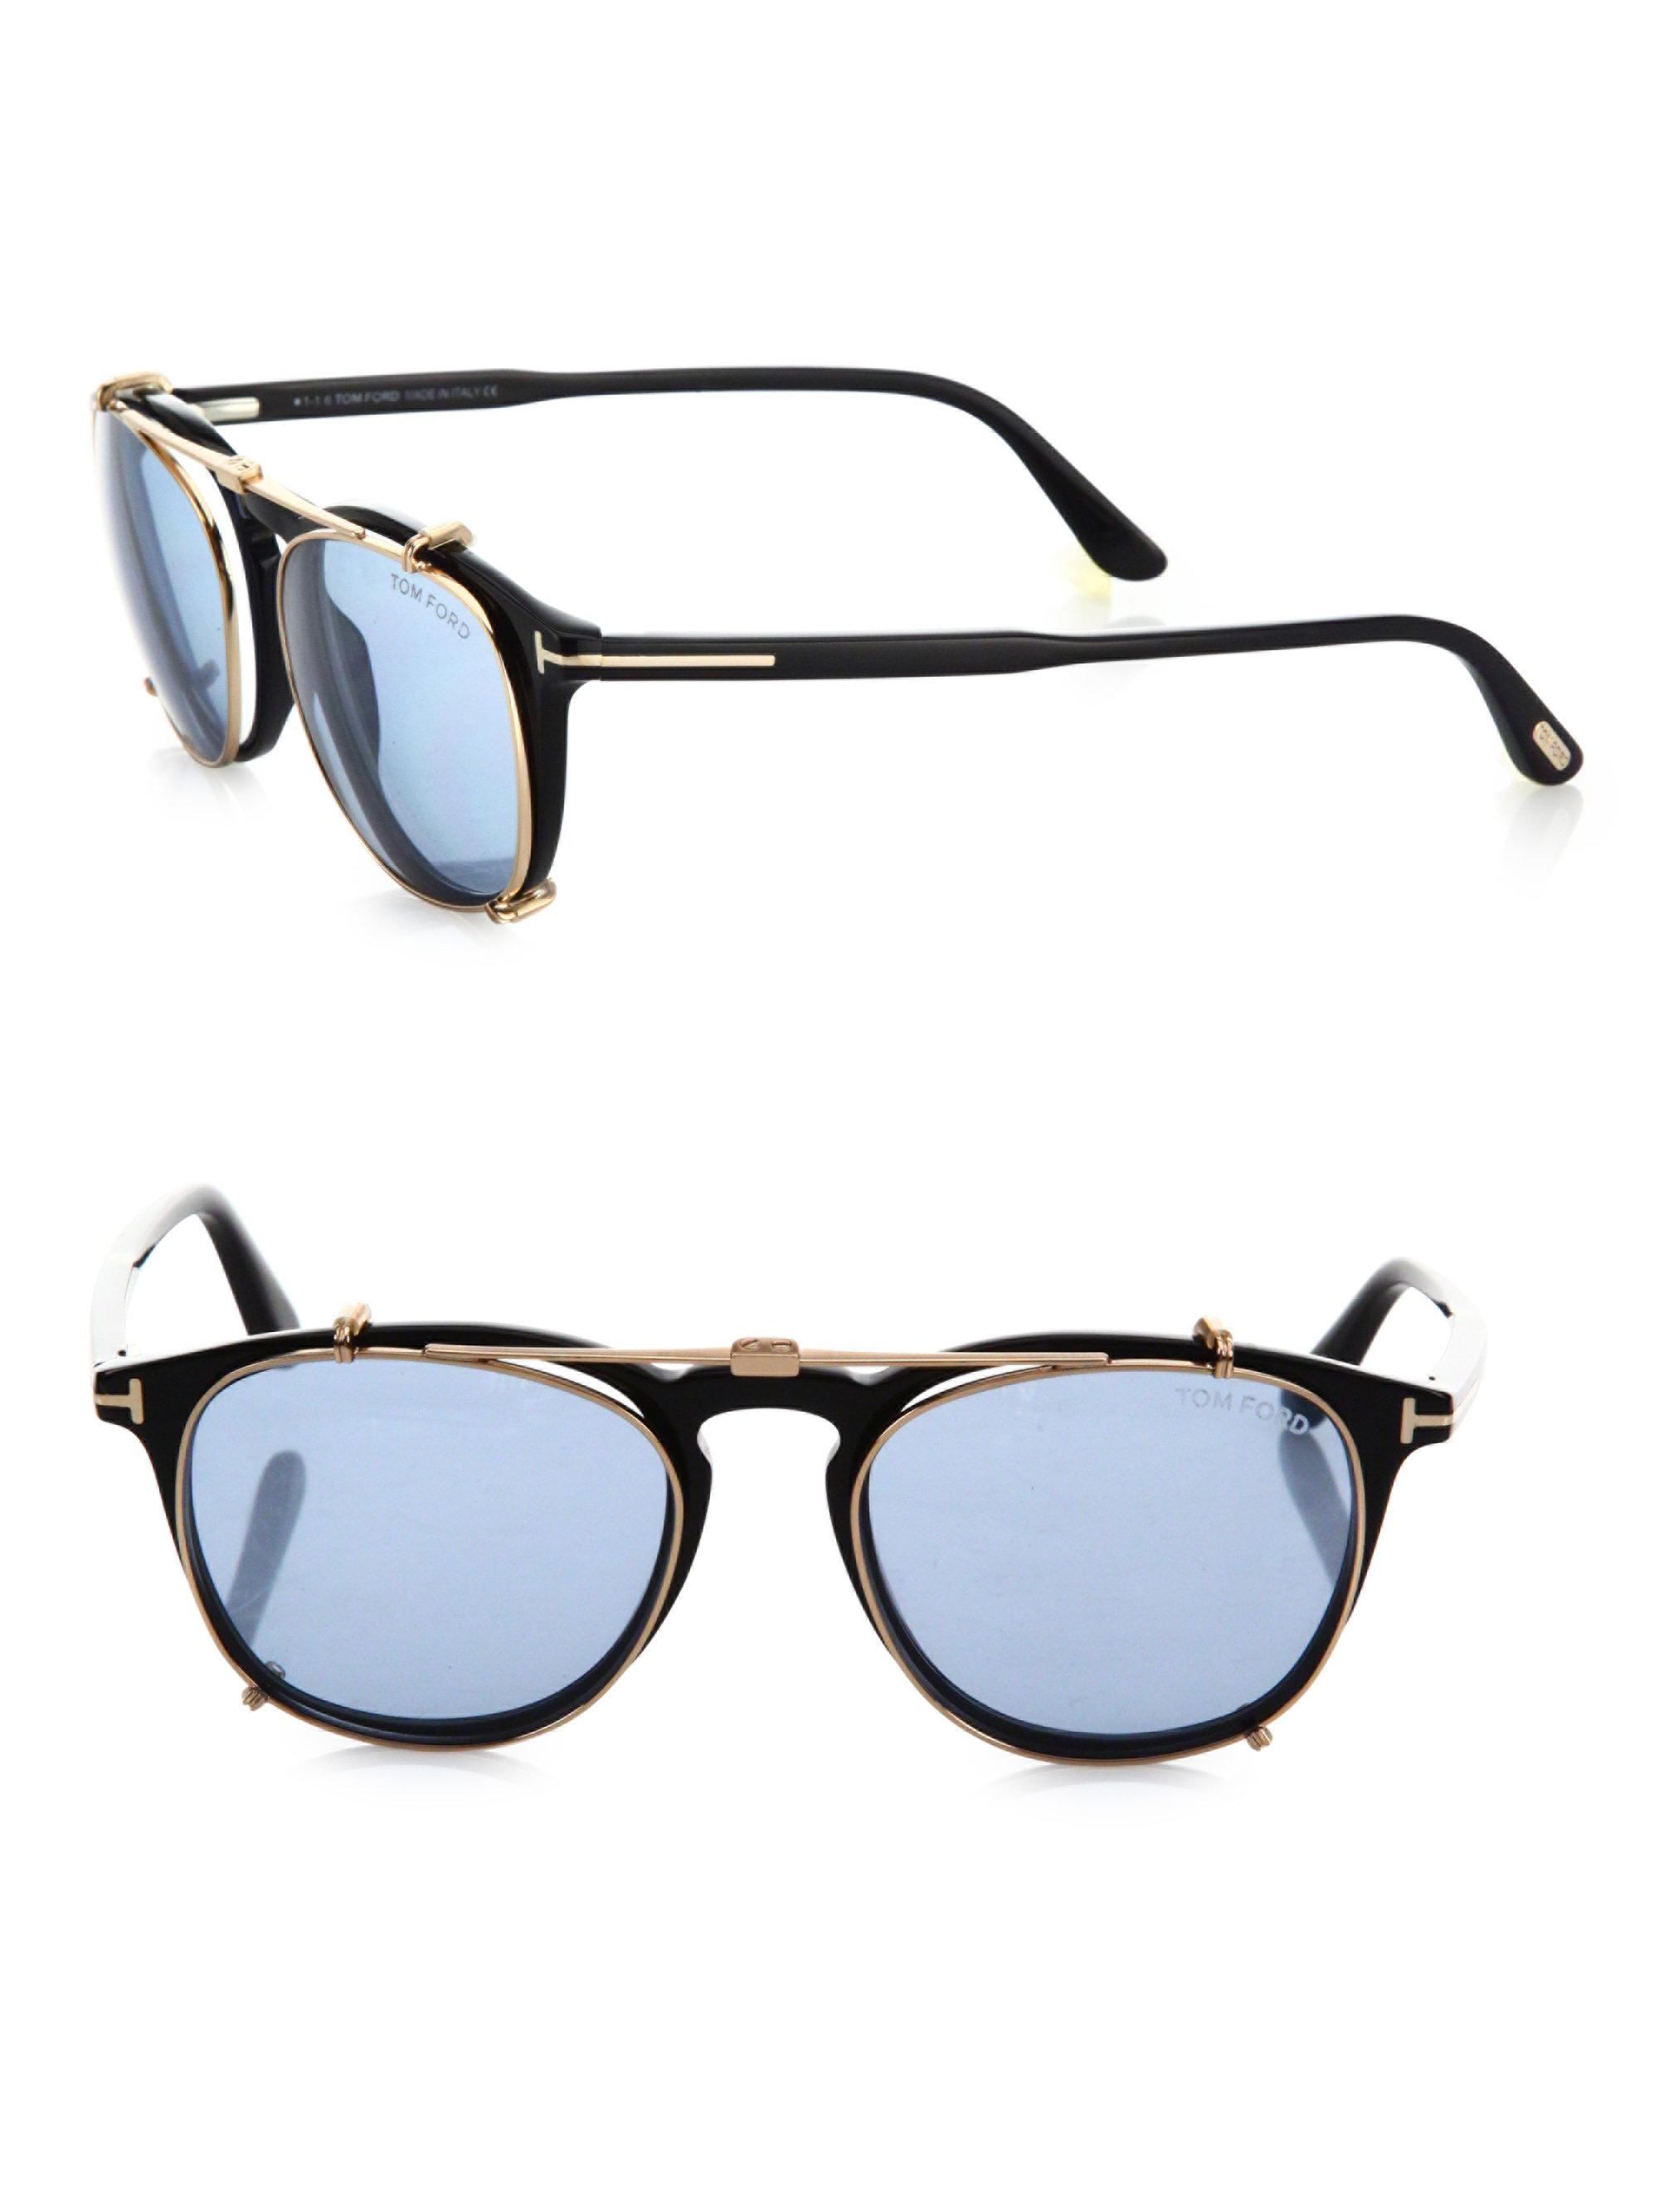 878c5695b12 Lyst - Tom Ford 50mm Round Optical Glasses   Clip-on Sunglasses in Blue